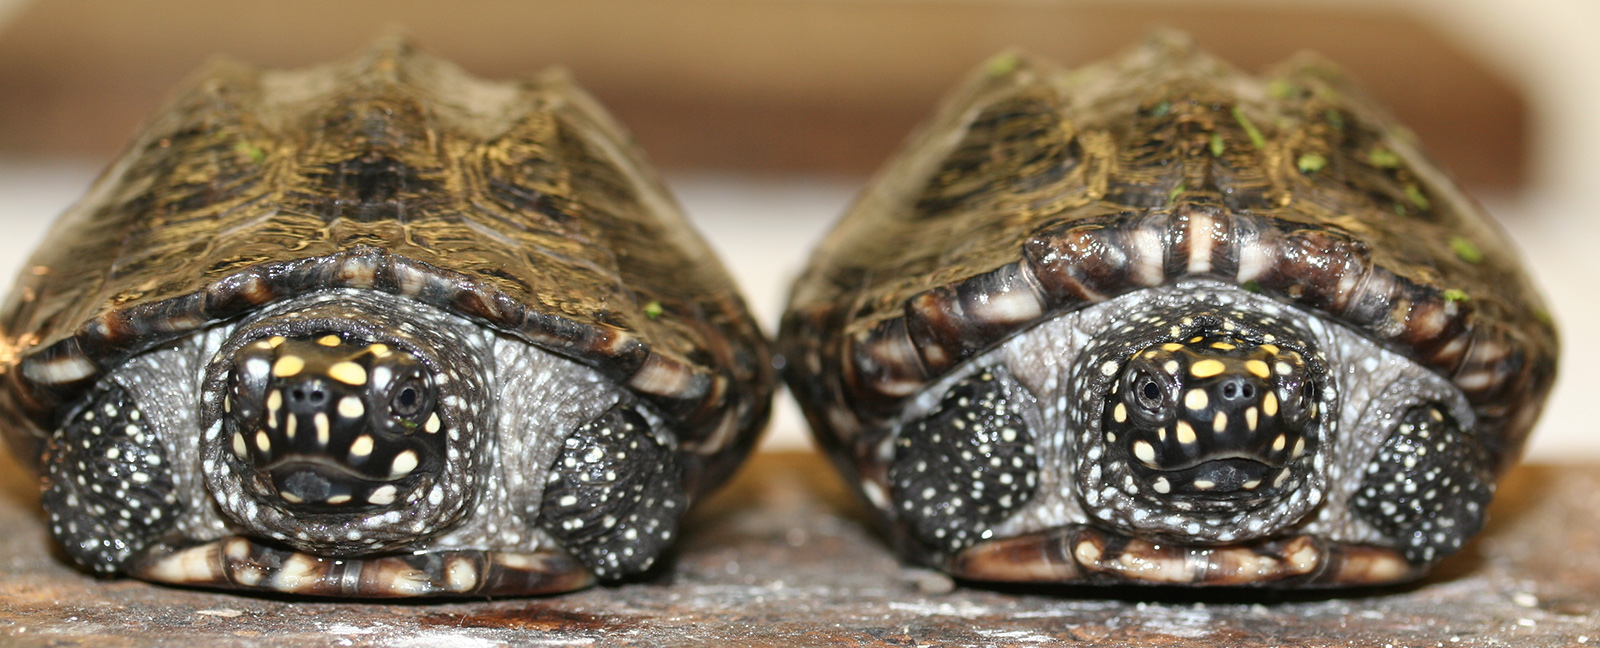 Two tiny turtles side by side, legs retracted into shells and spotted faces peering out.